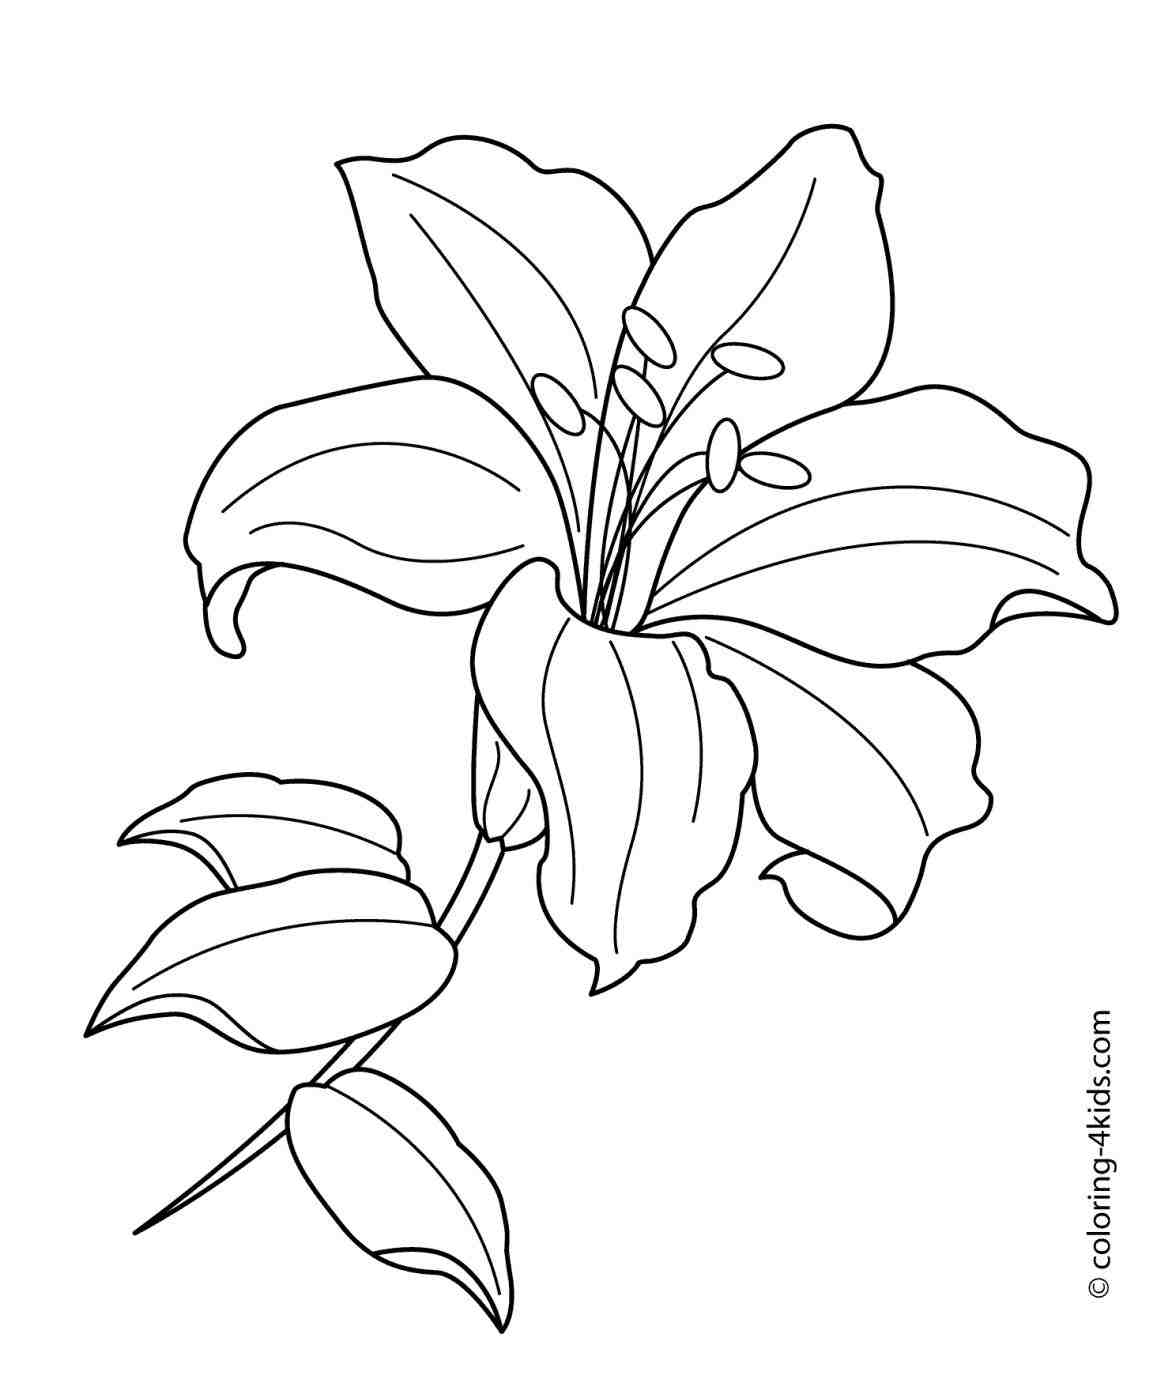 Stargazer lilly drawing at getdrawings free for personal use 1172x1394 flower bouquet drawing tiger lily flower drawing outline images izmirmasajfo